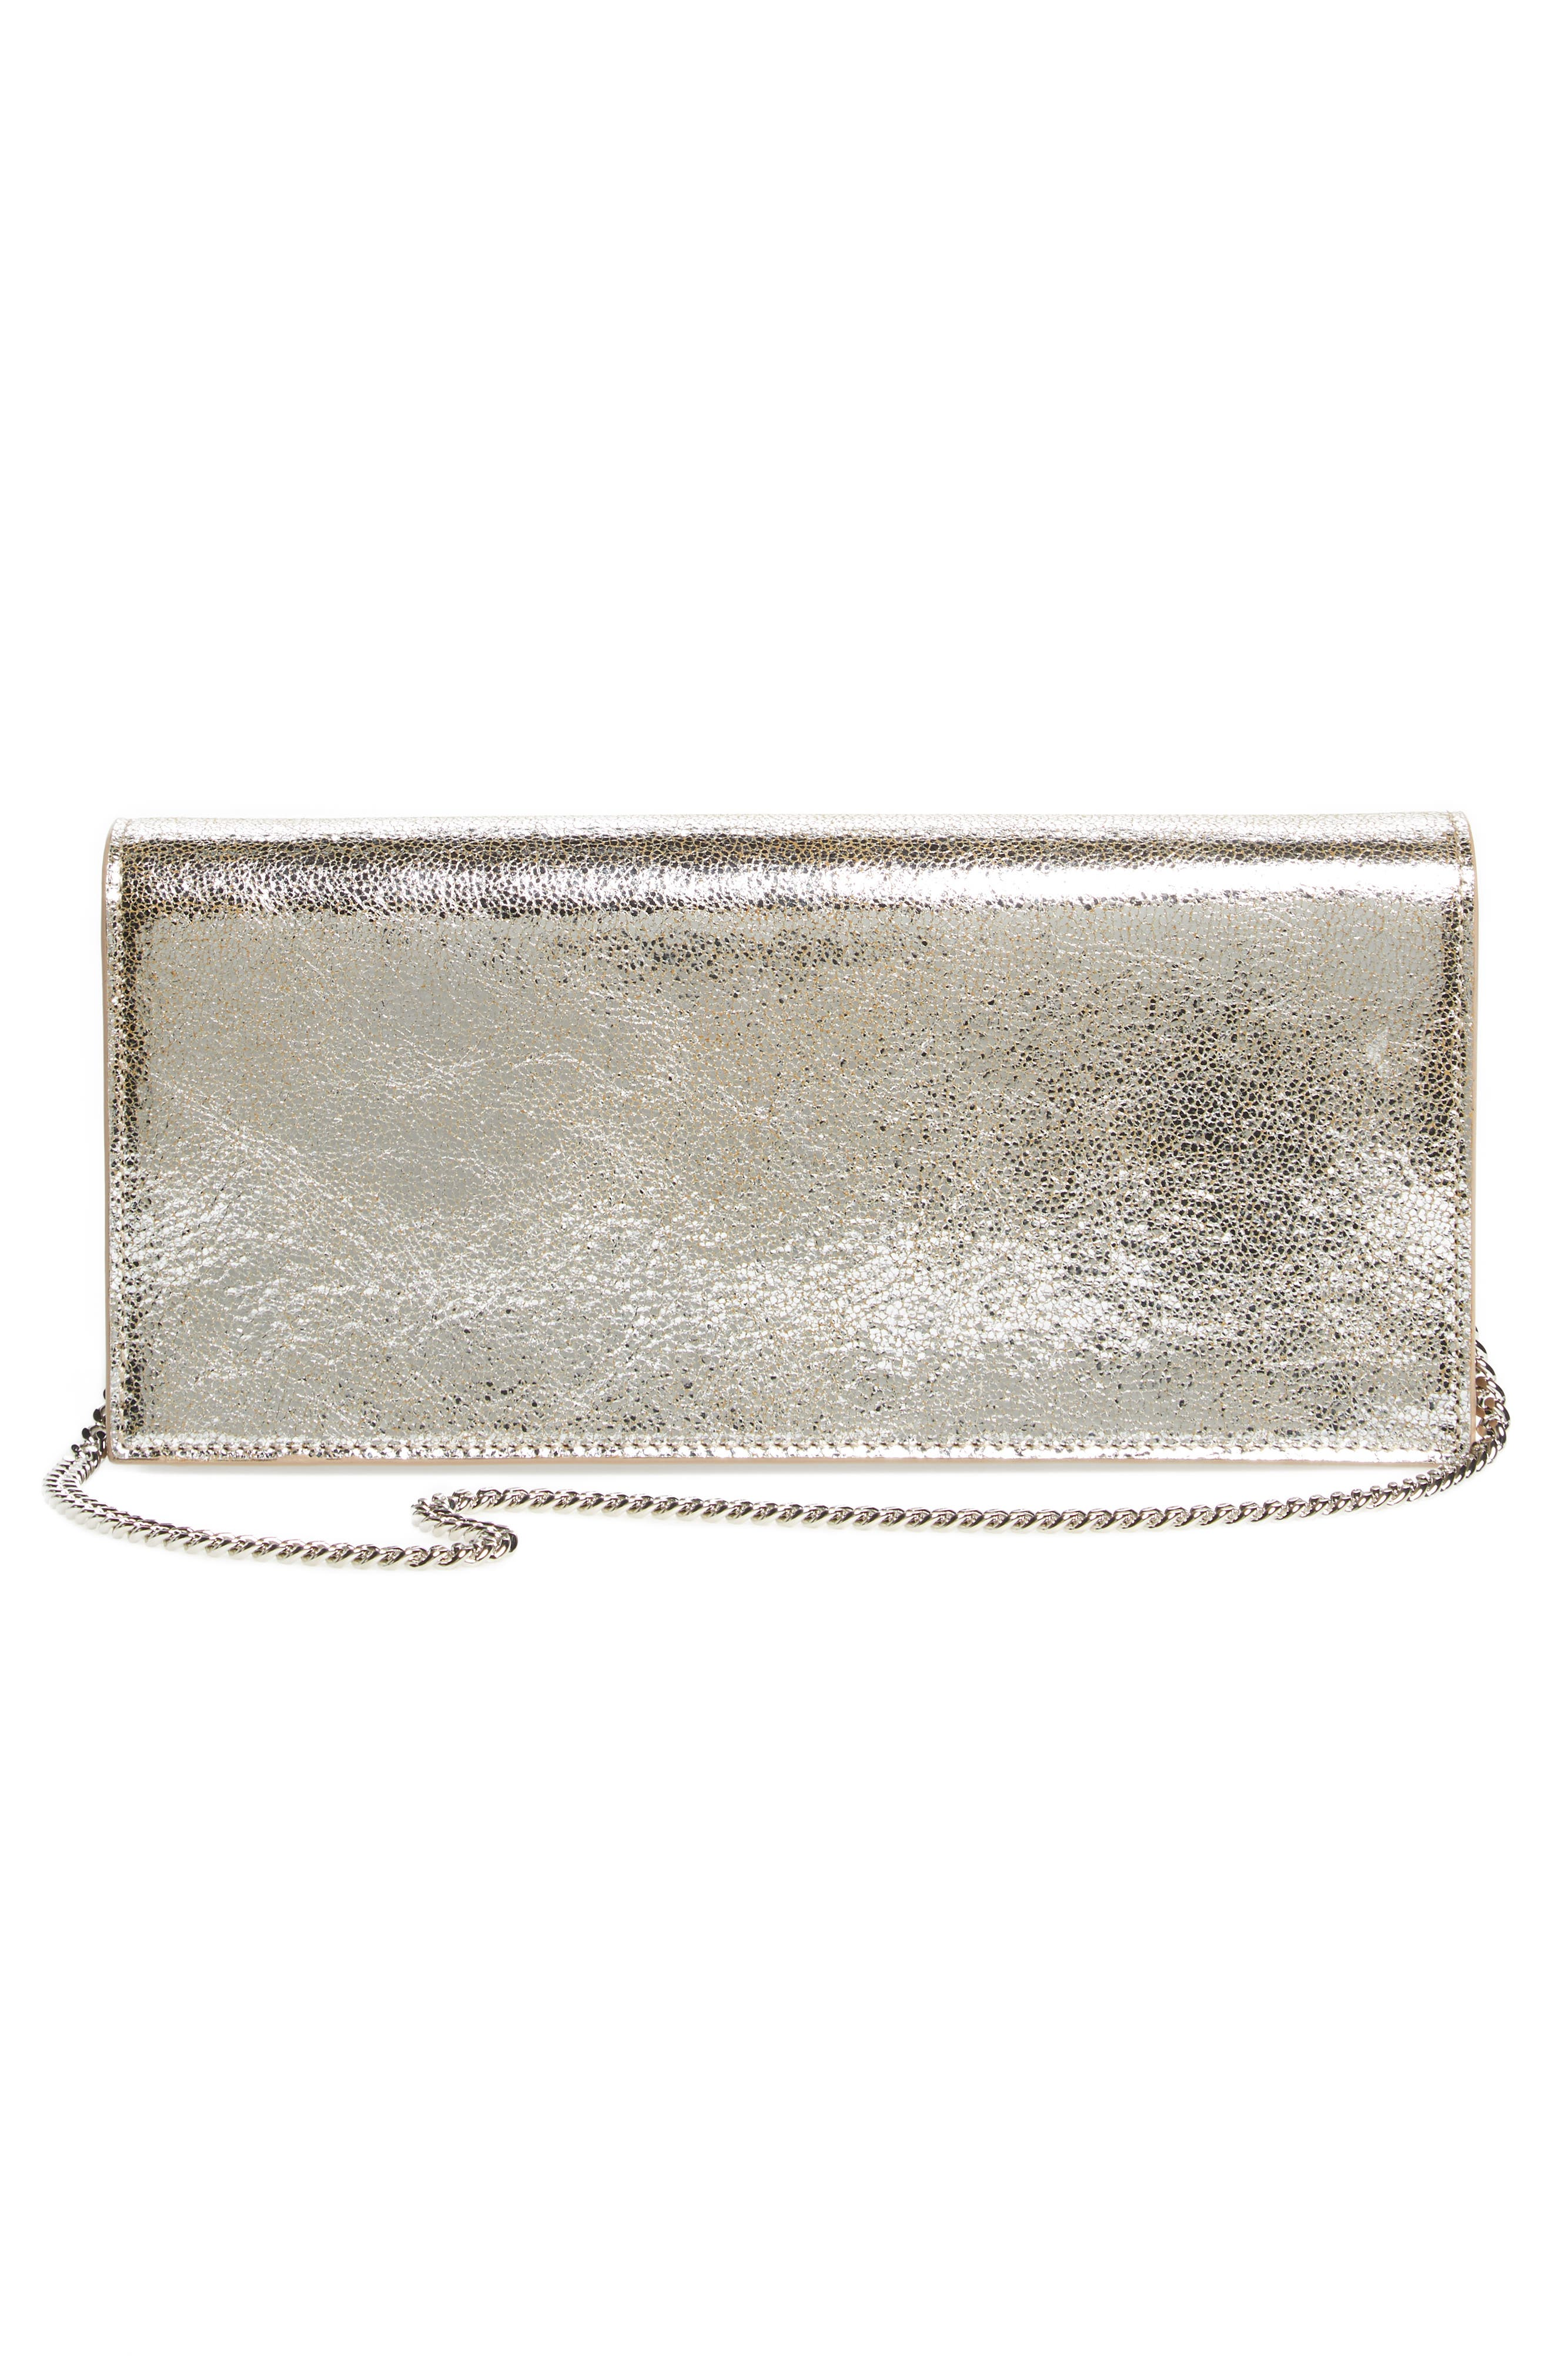 Fie Metallic Leather Clutch,                             Alternate thumbnail 2, color,                             Champagne